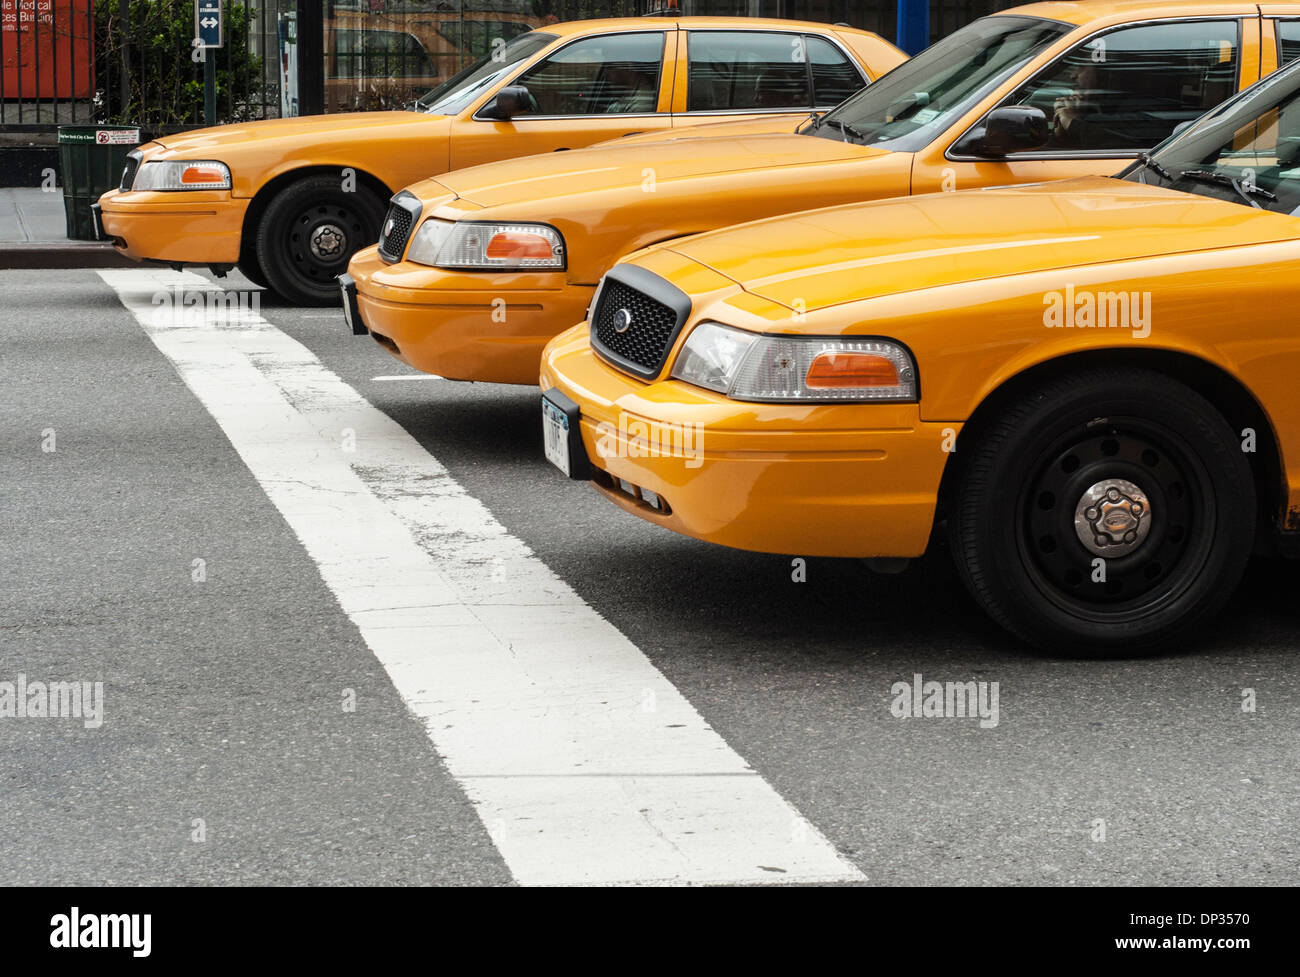 A line up of taxis on a NYC street - Stock Image